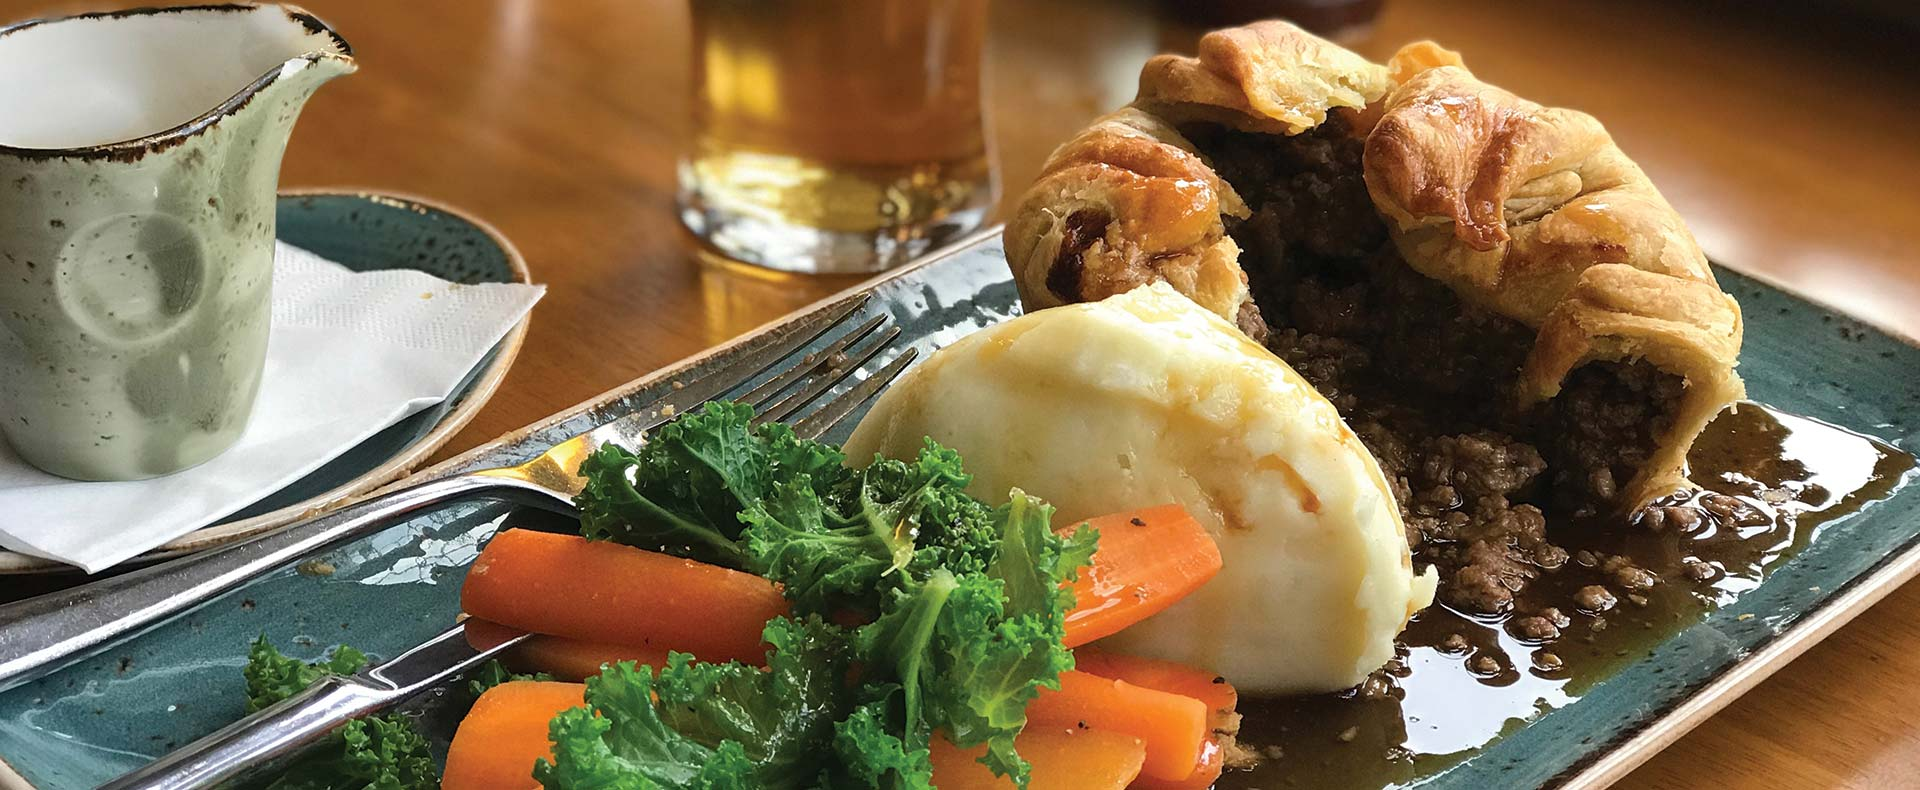 British Pie Week at Monty's Inn